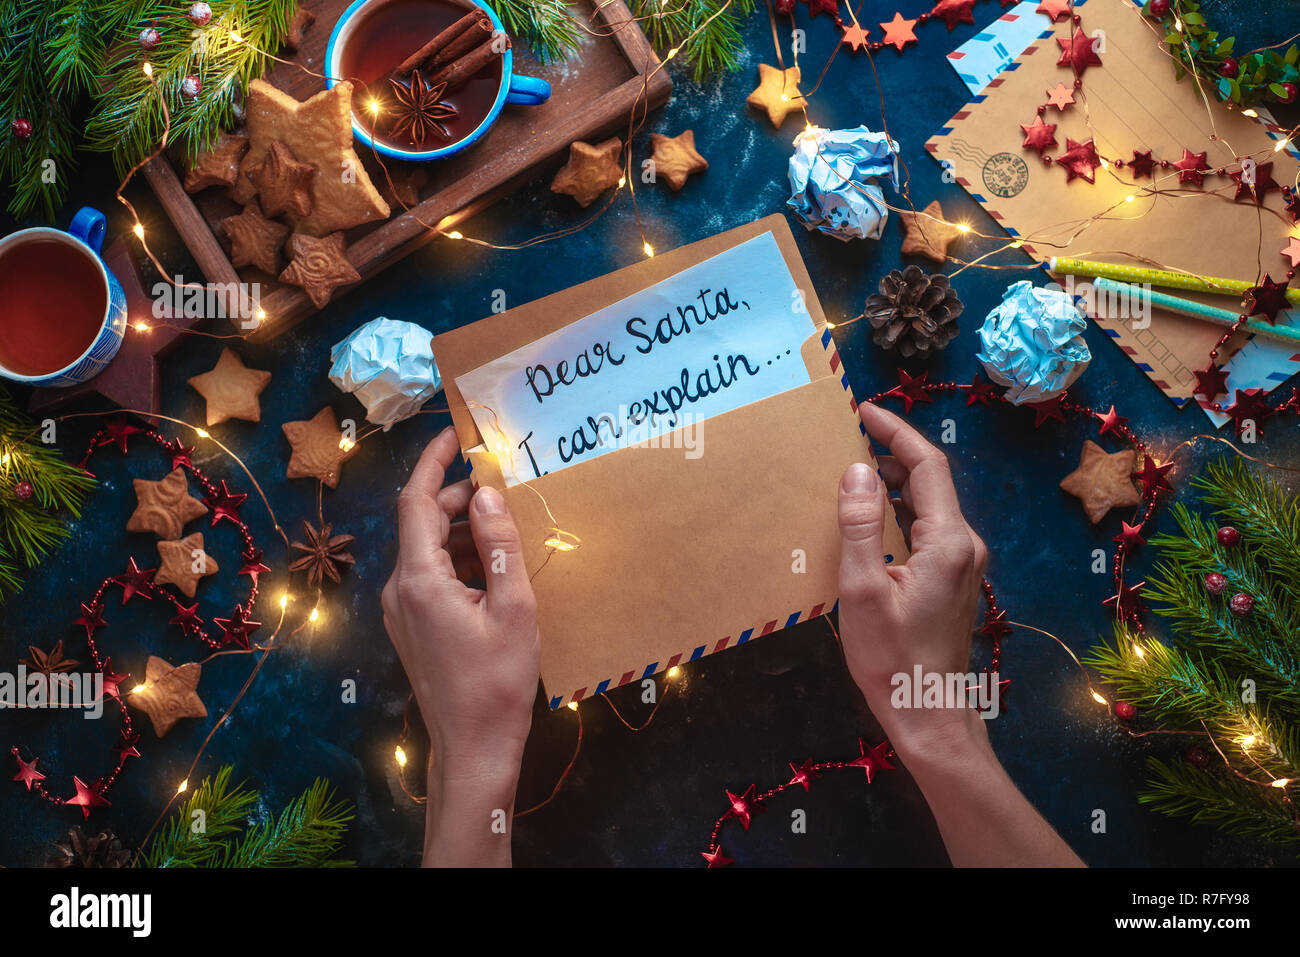 Hands holding a letter to Sant. Beautiful Christmas flat lay with fairy lights, star-shaped cookies, and tea. Dark still life from above with contrast colors and copy space - Stock Image